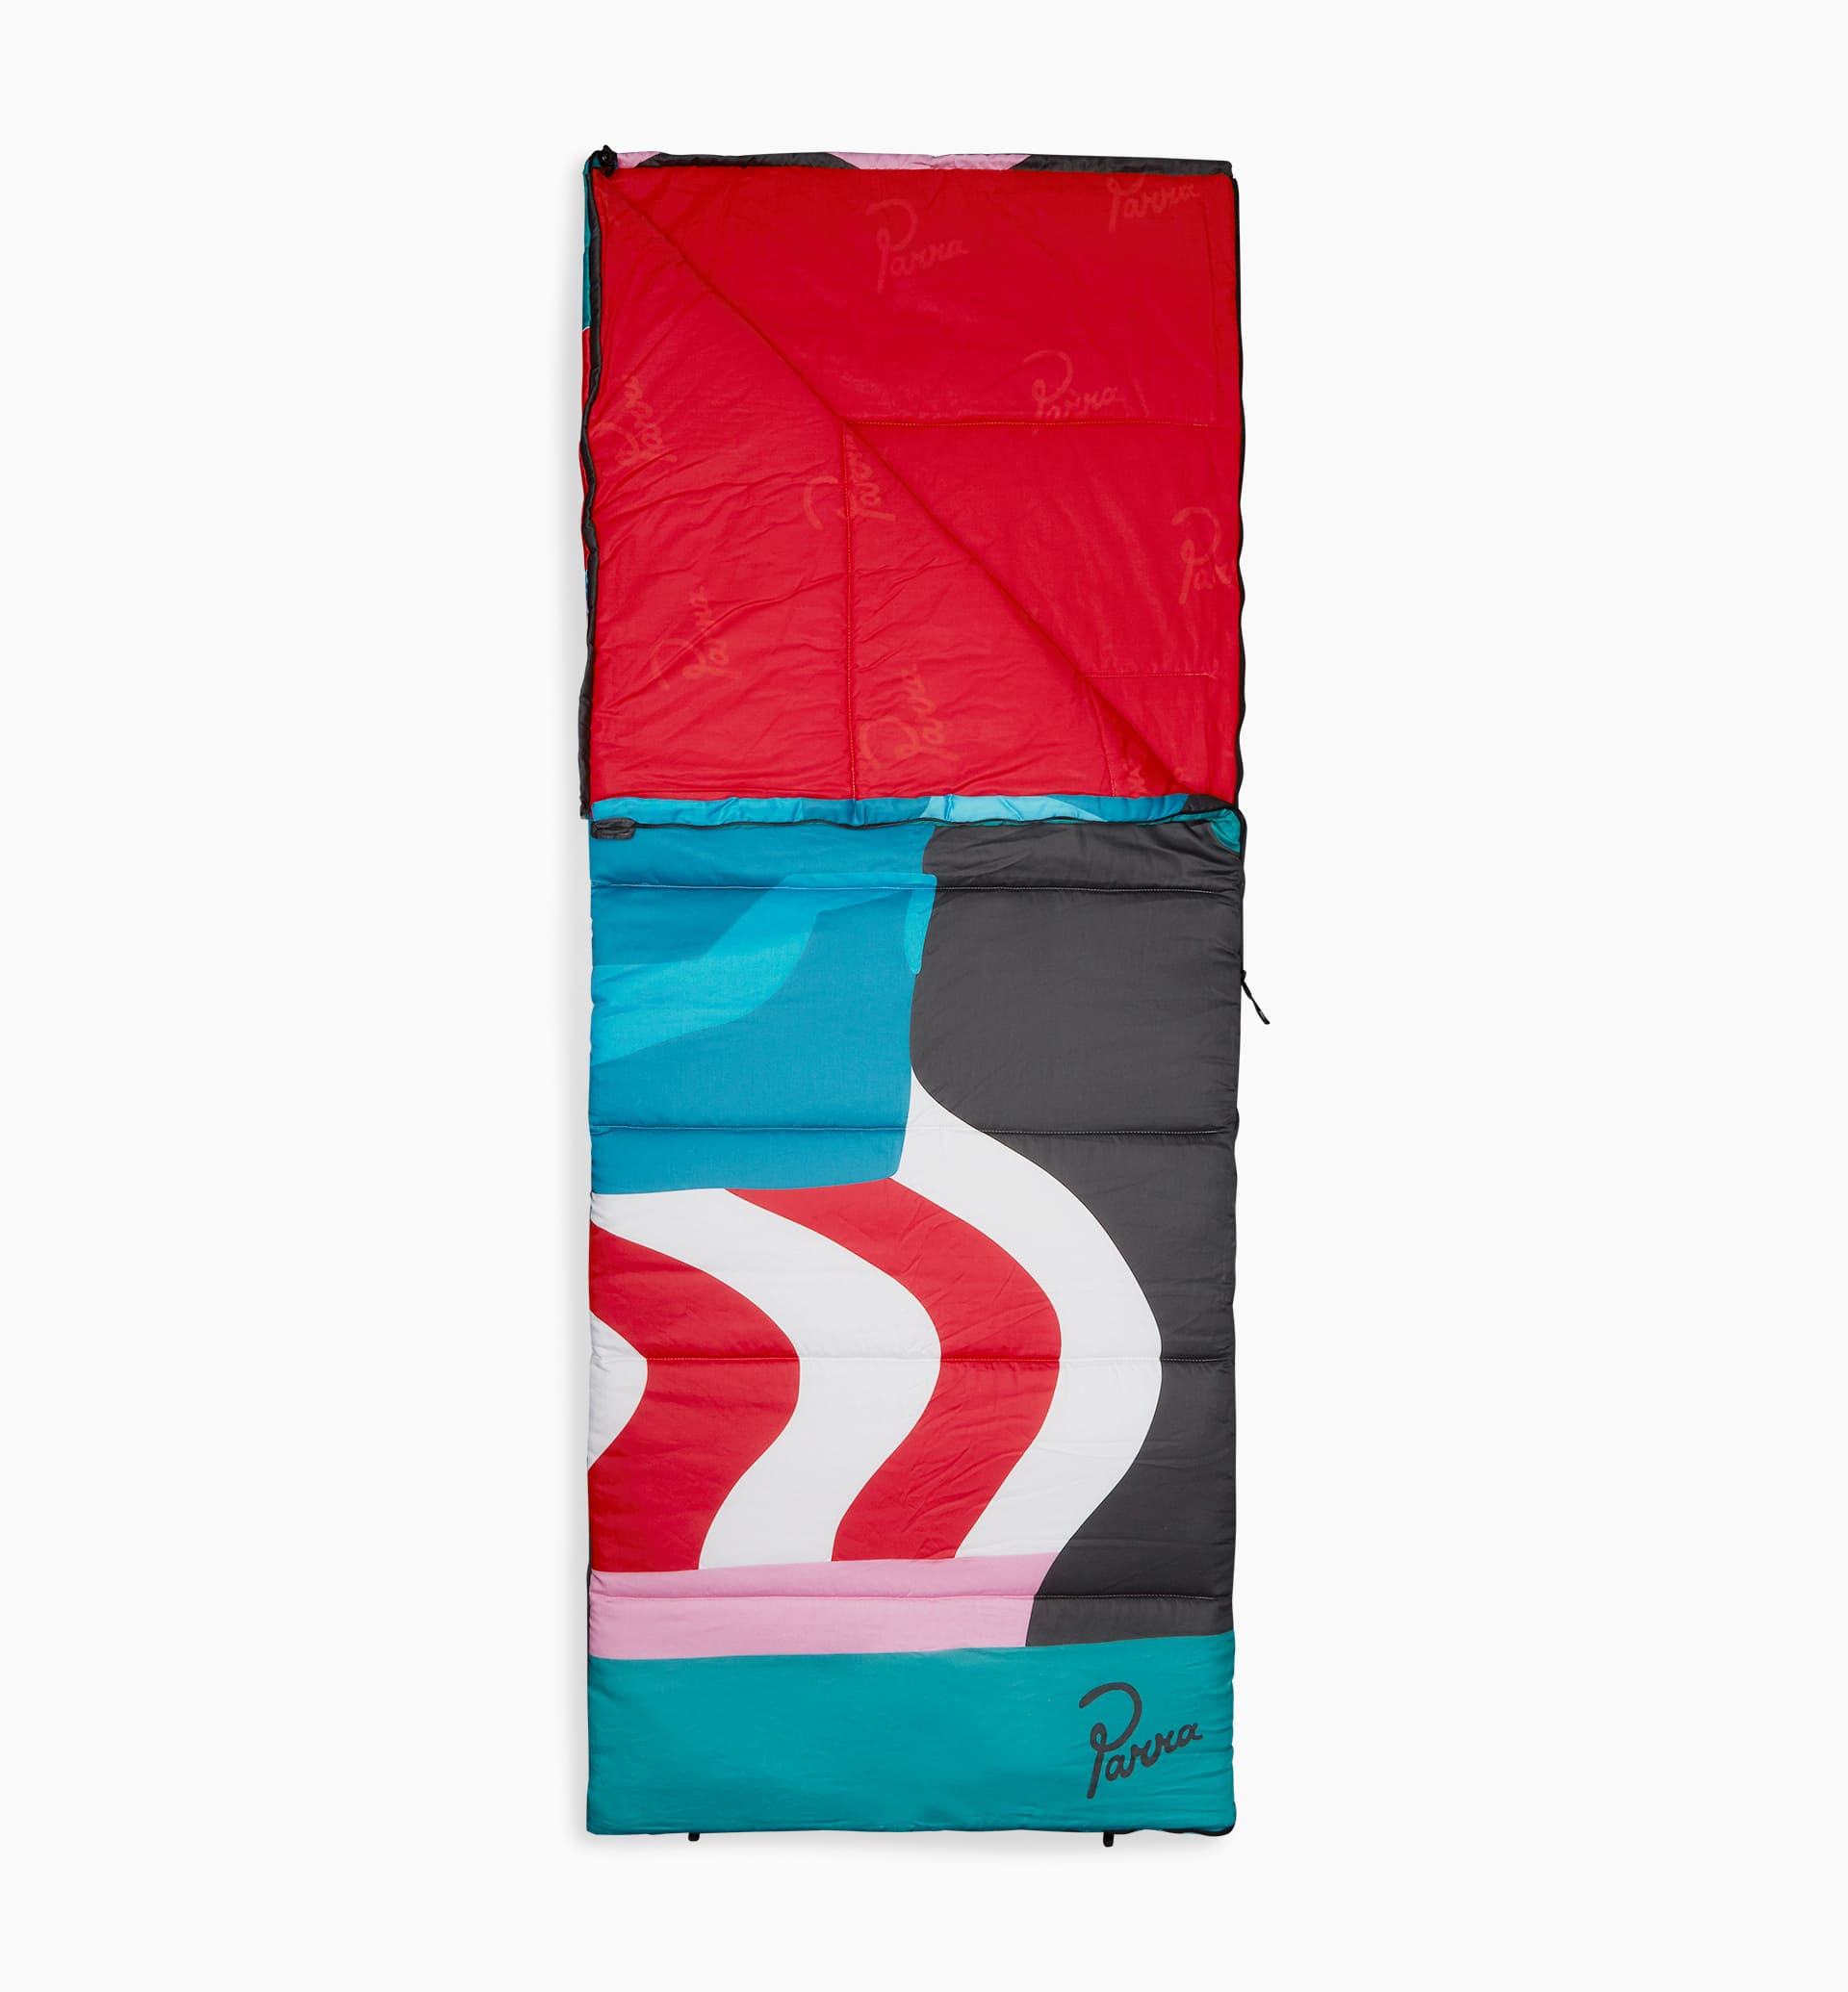 Parra - the comforting room sleeping bag